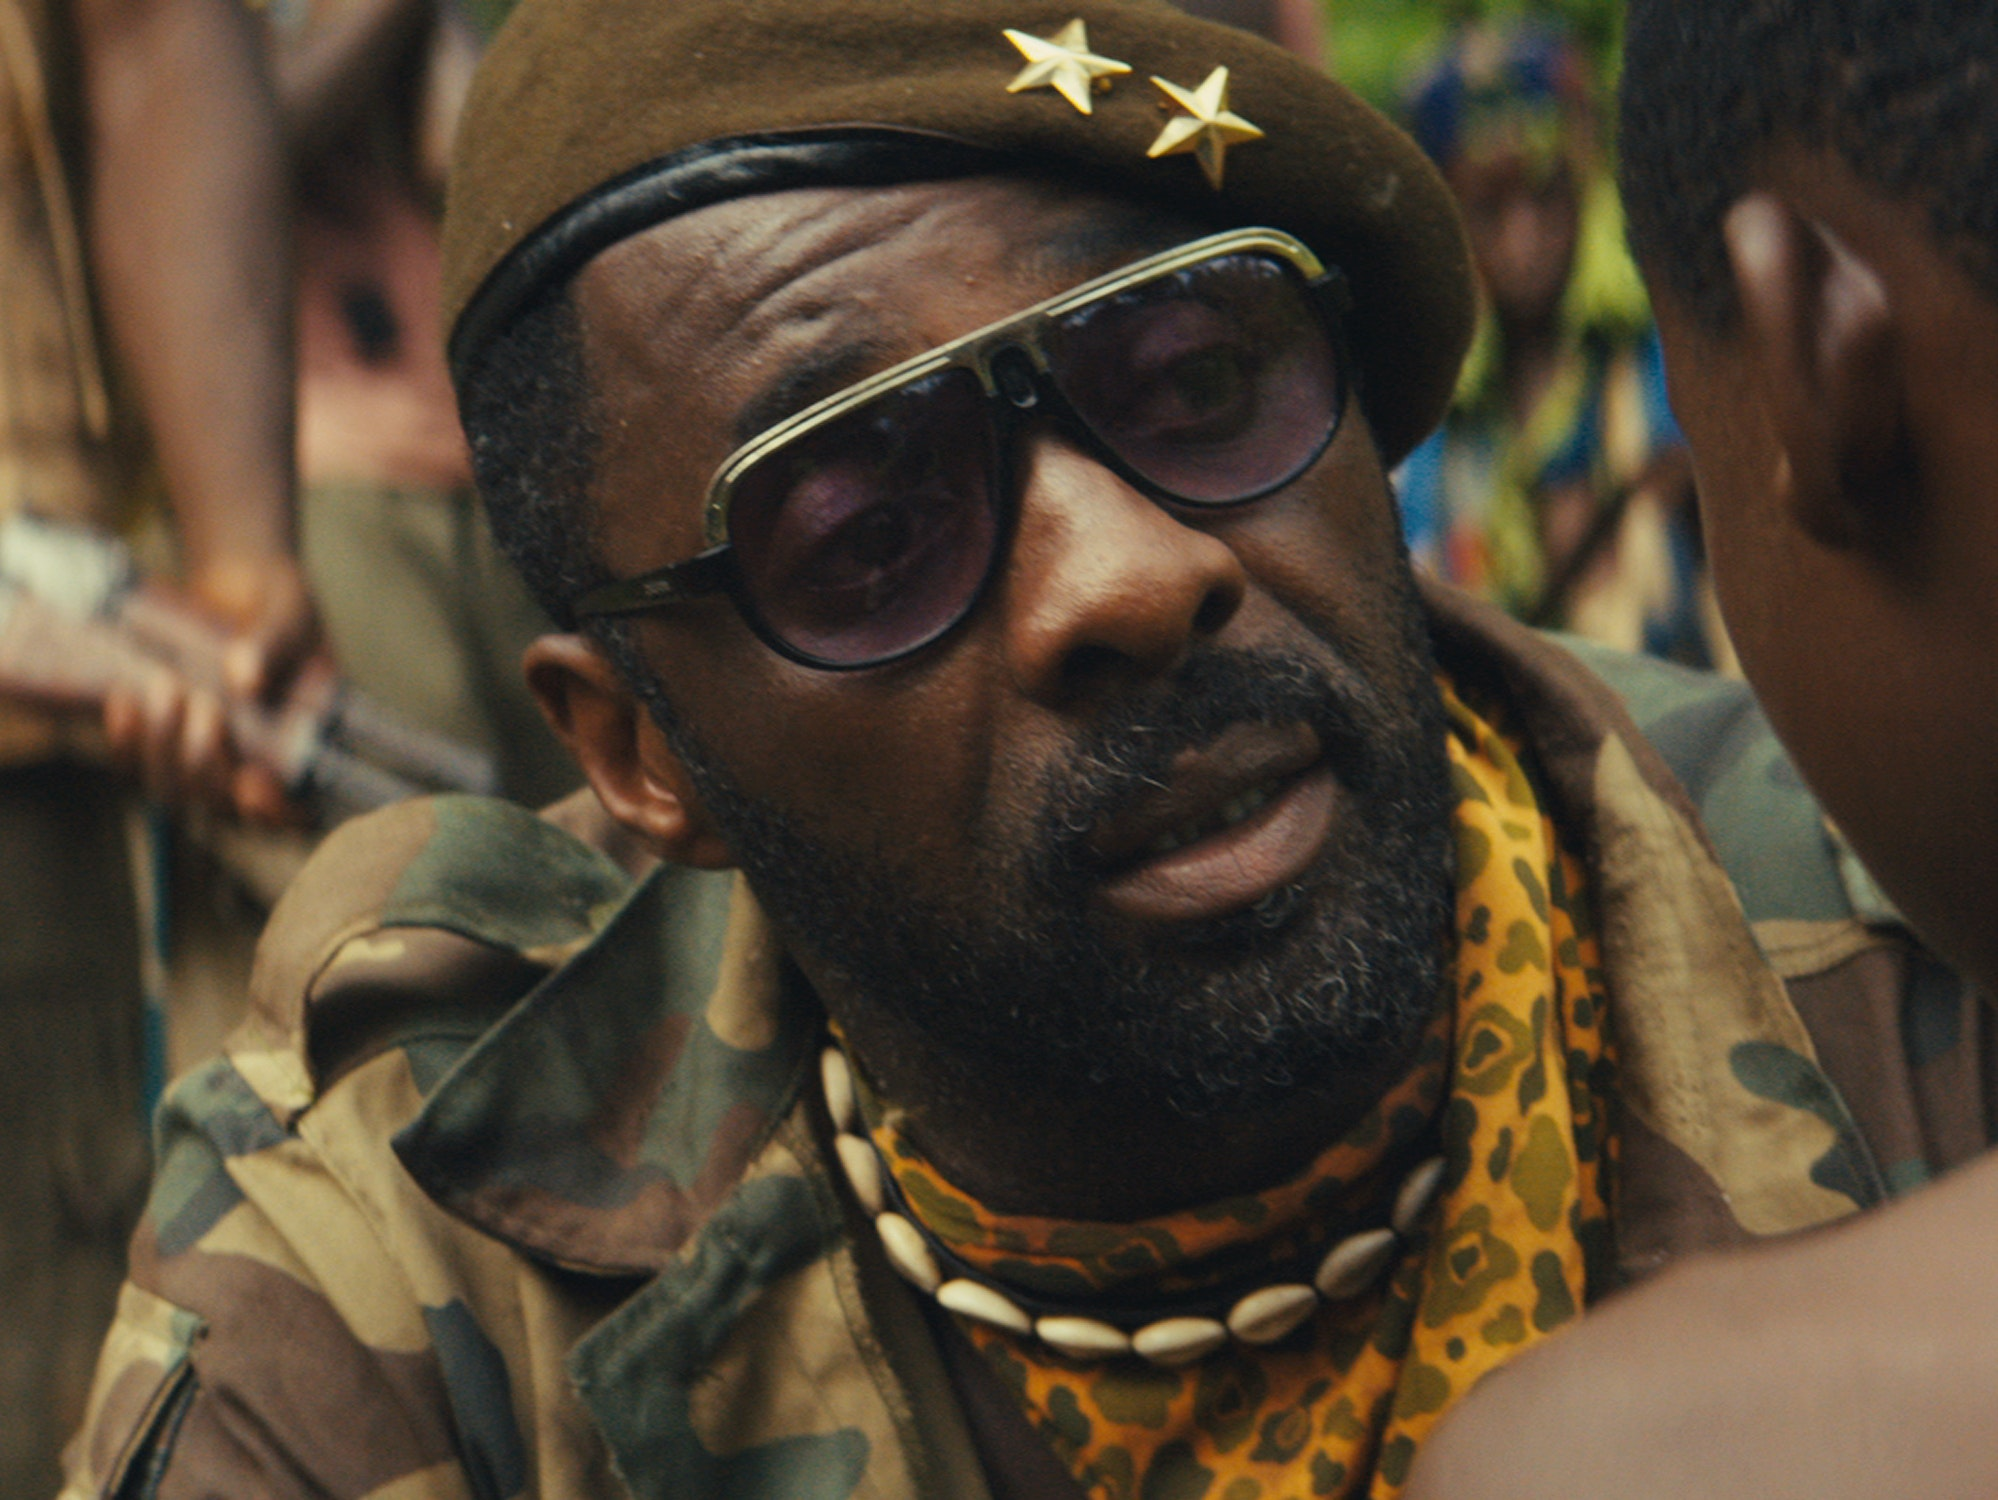 The Final Trailer for Netflix's 'Beasts of No Nation' Is Here